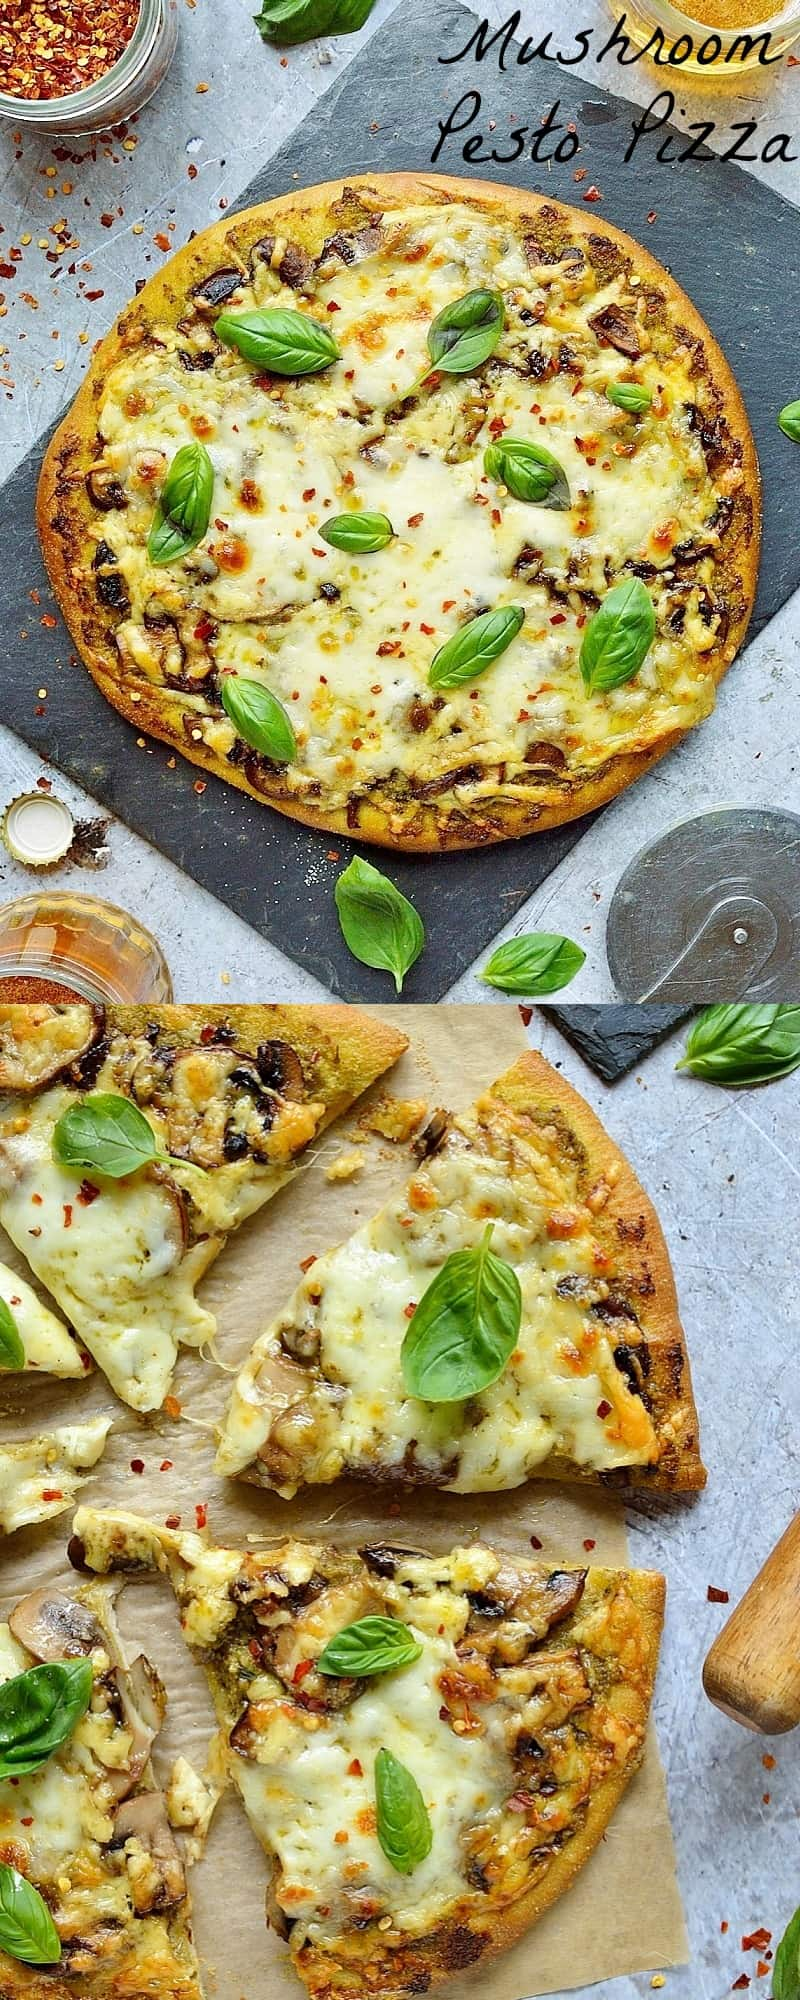 Mushroom pesto pizza - easy home made vegetarian pizza topped with garlic mushrooms, basil pesto and plenty of mozzarella and cheddar cheese.